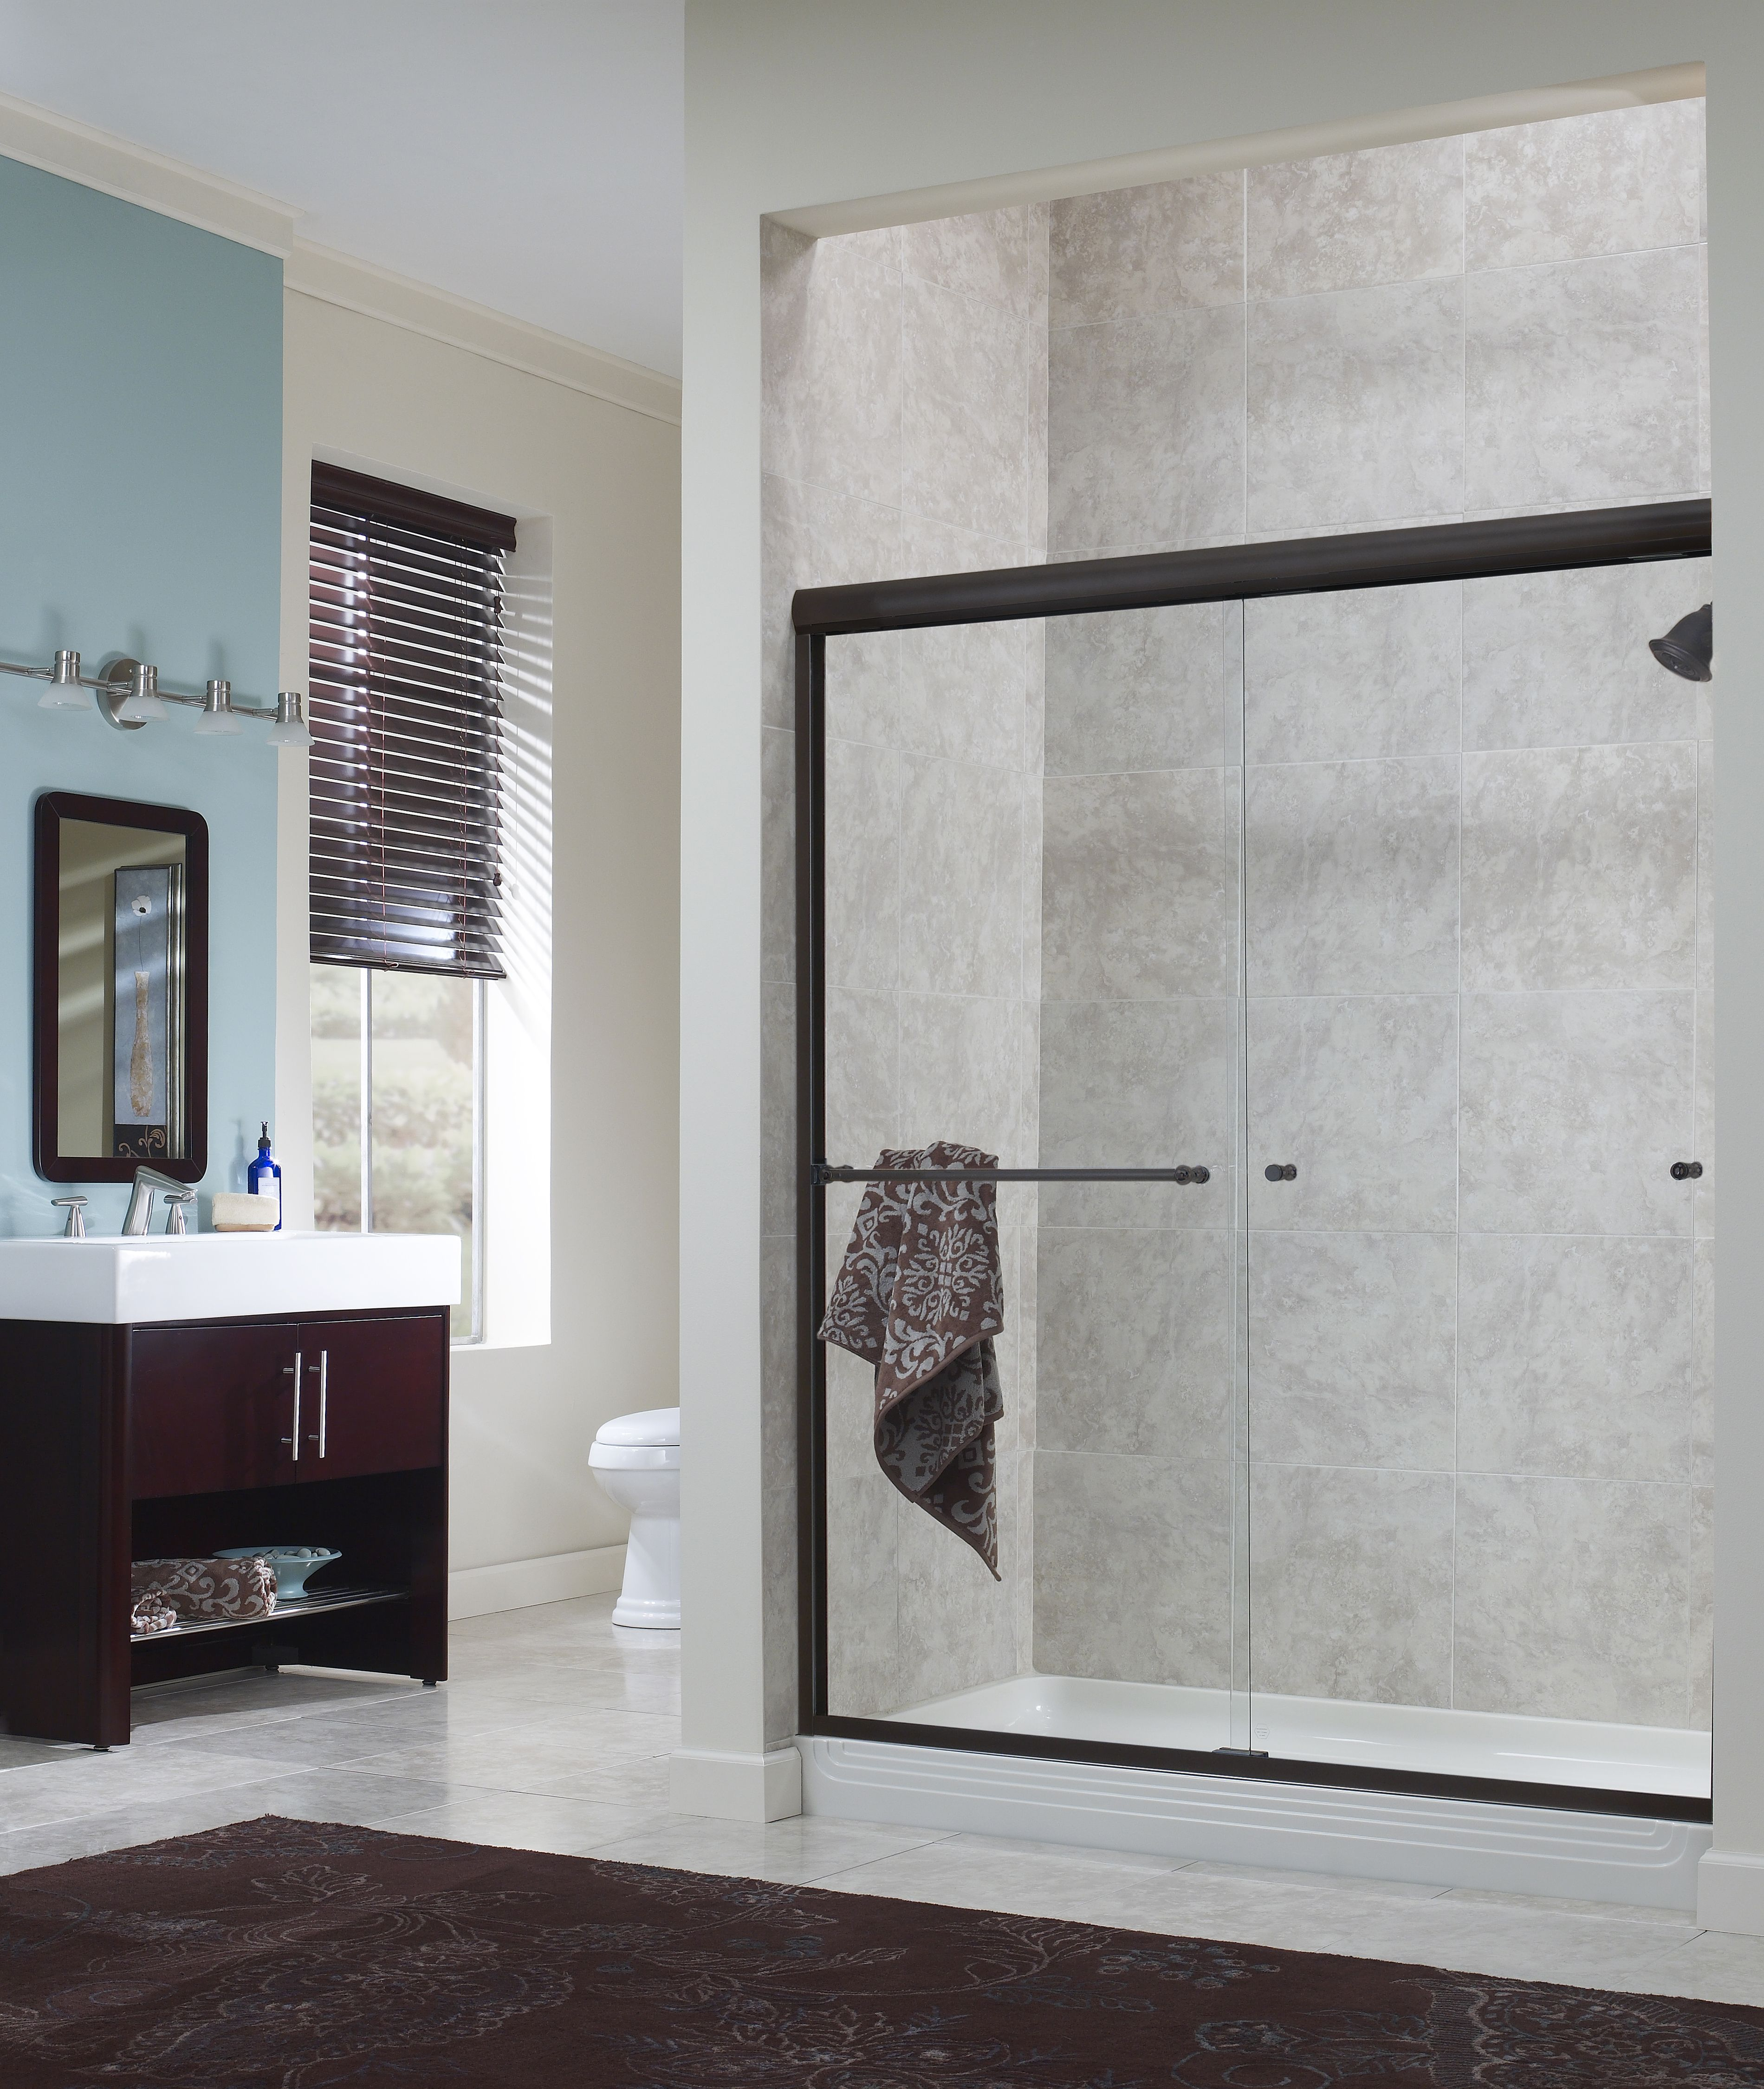 Awesome Foremost International   Cove 44 Inch To 48 Inch X 72 Inch H. Frameless  Sliding Shower Door In Oil Rubbed Bronze With Inch Clear Glass     Home  Depot Canada